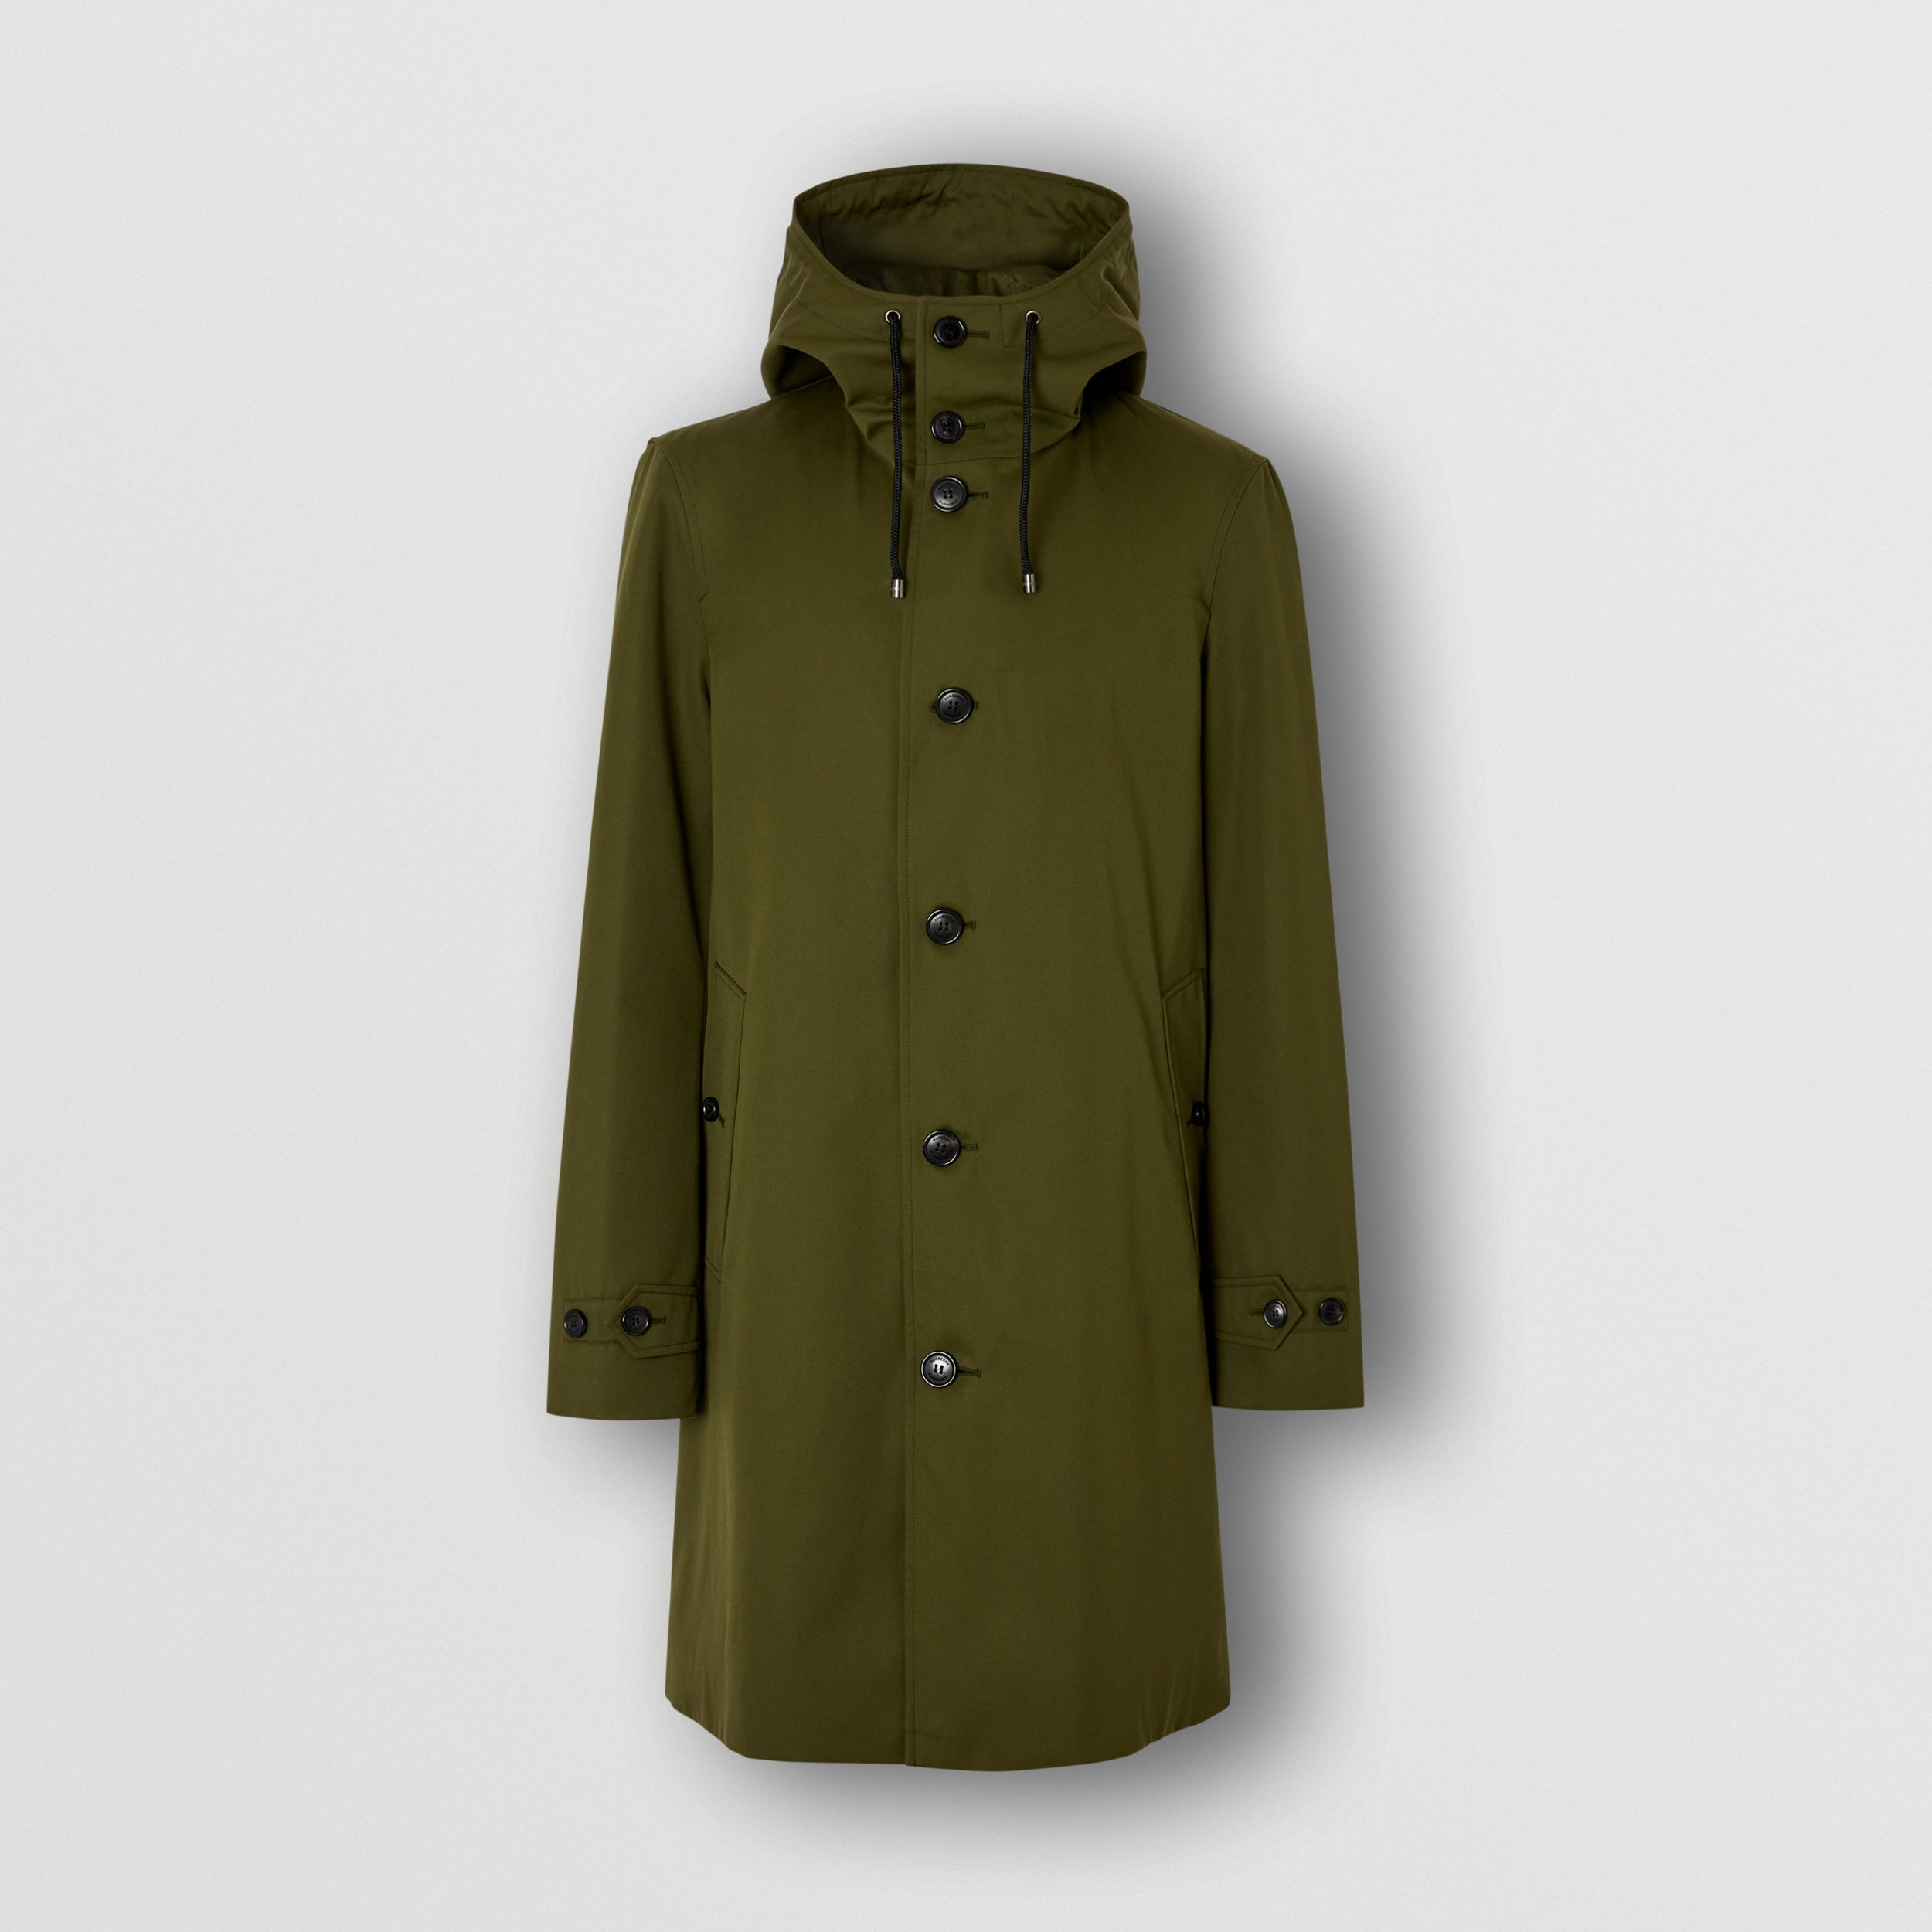 Cotton Gabardine Hooded Coat in Dark Olive Green - Men | Burberry Hong Kong S.A.R. - 4